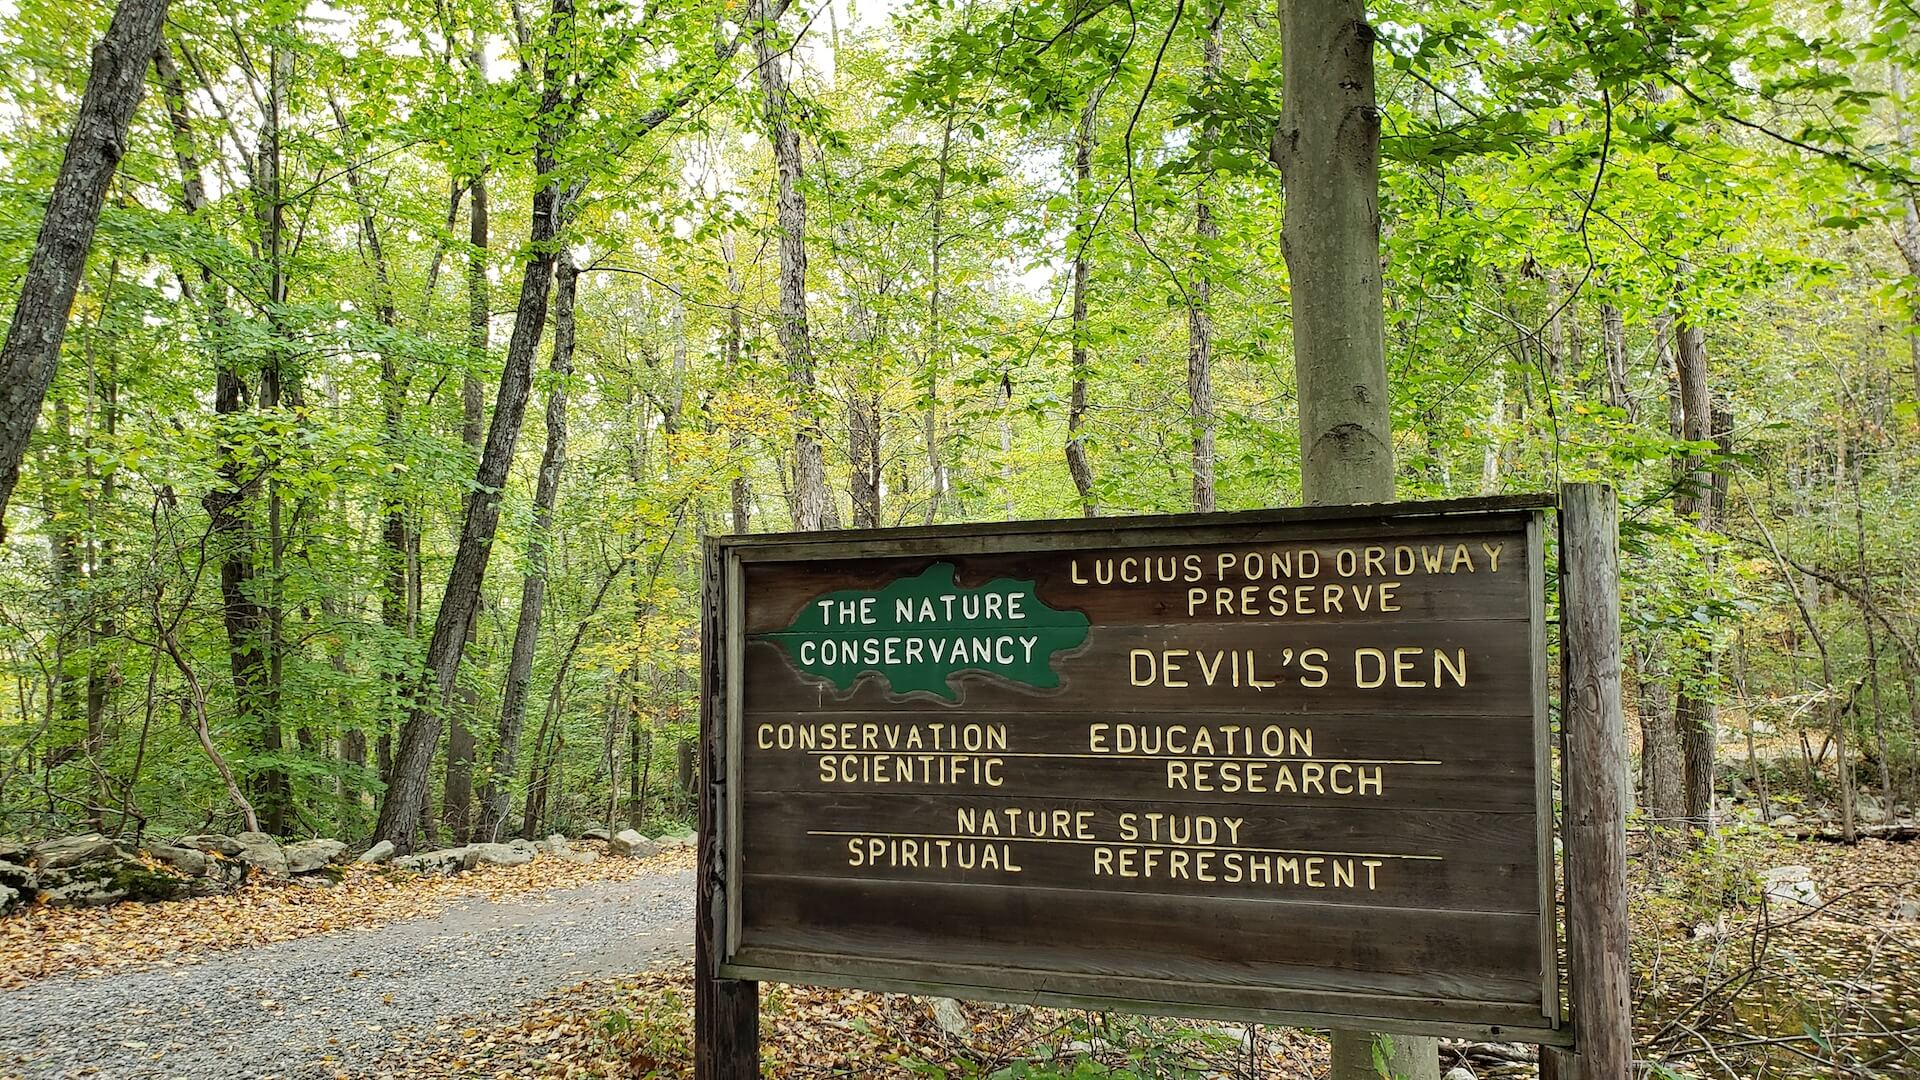 Devils-den-nature-preserve-weston.jpg